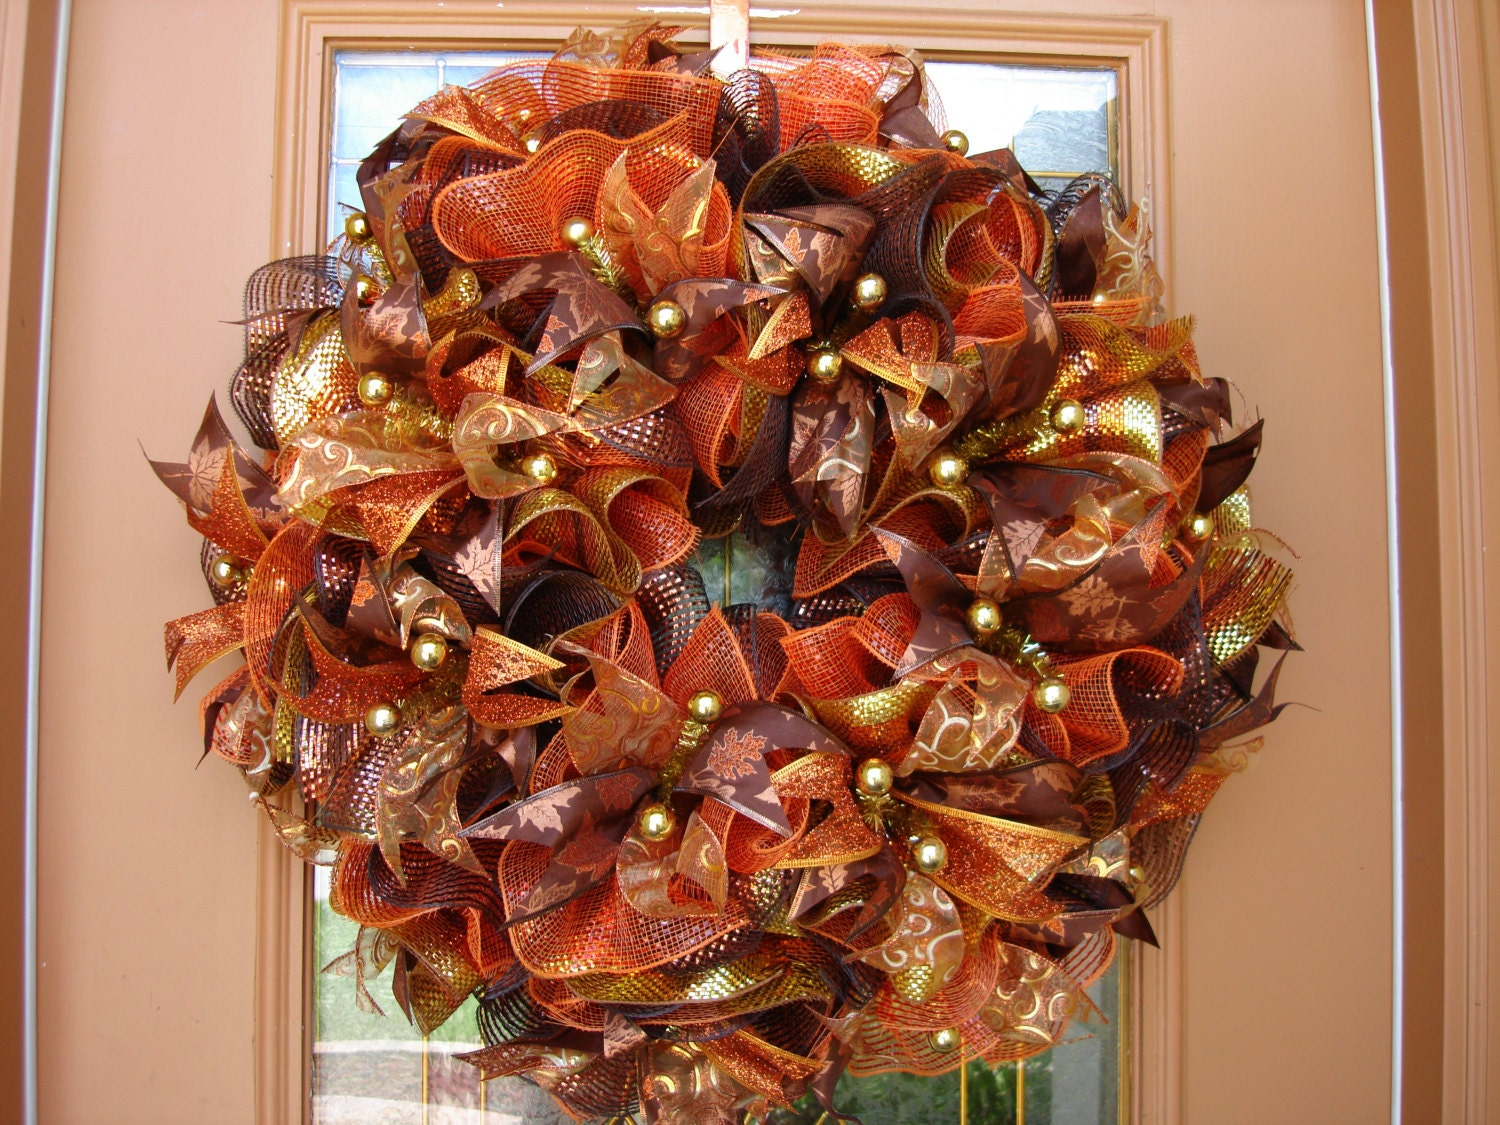 Modern thanksgiving decor - Request A Custom Order And Have Something Made Just For You